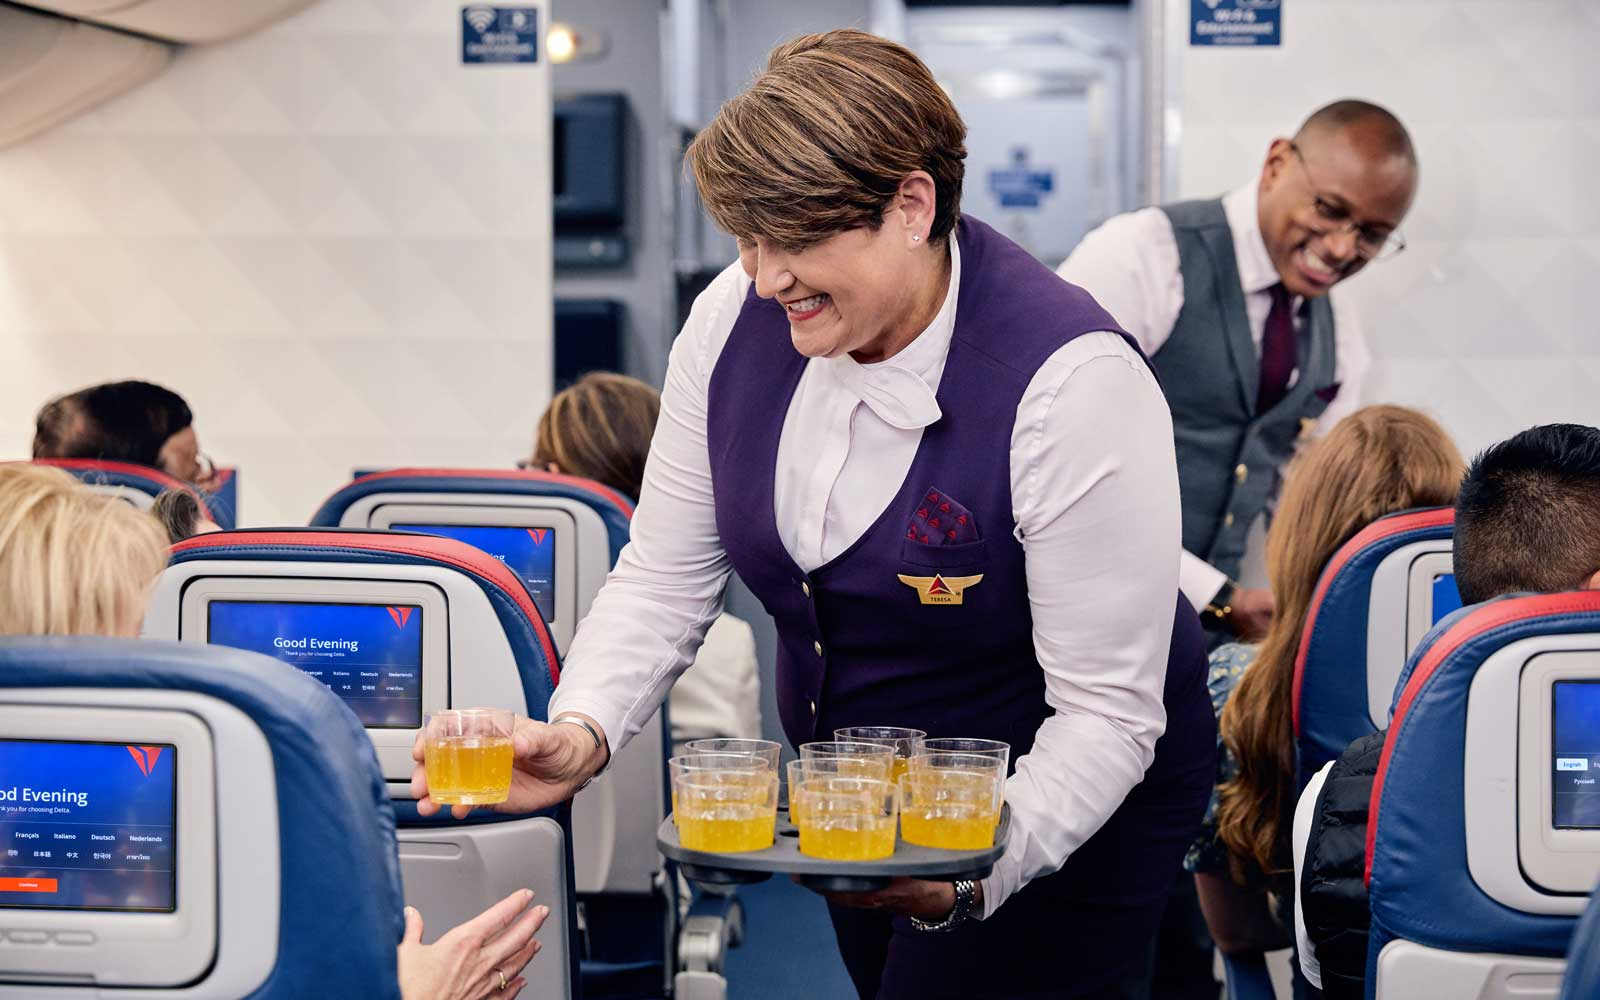 Passengers will receive complimentary welcome drinks.